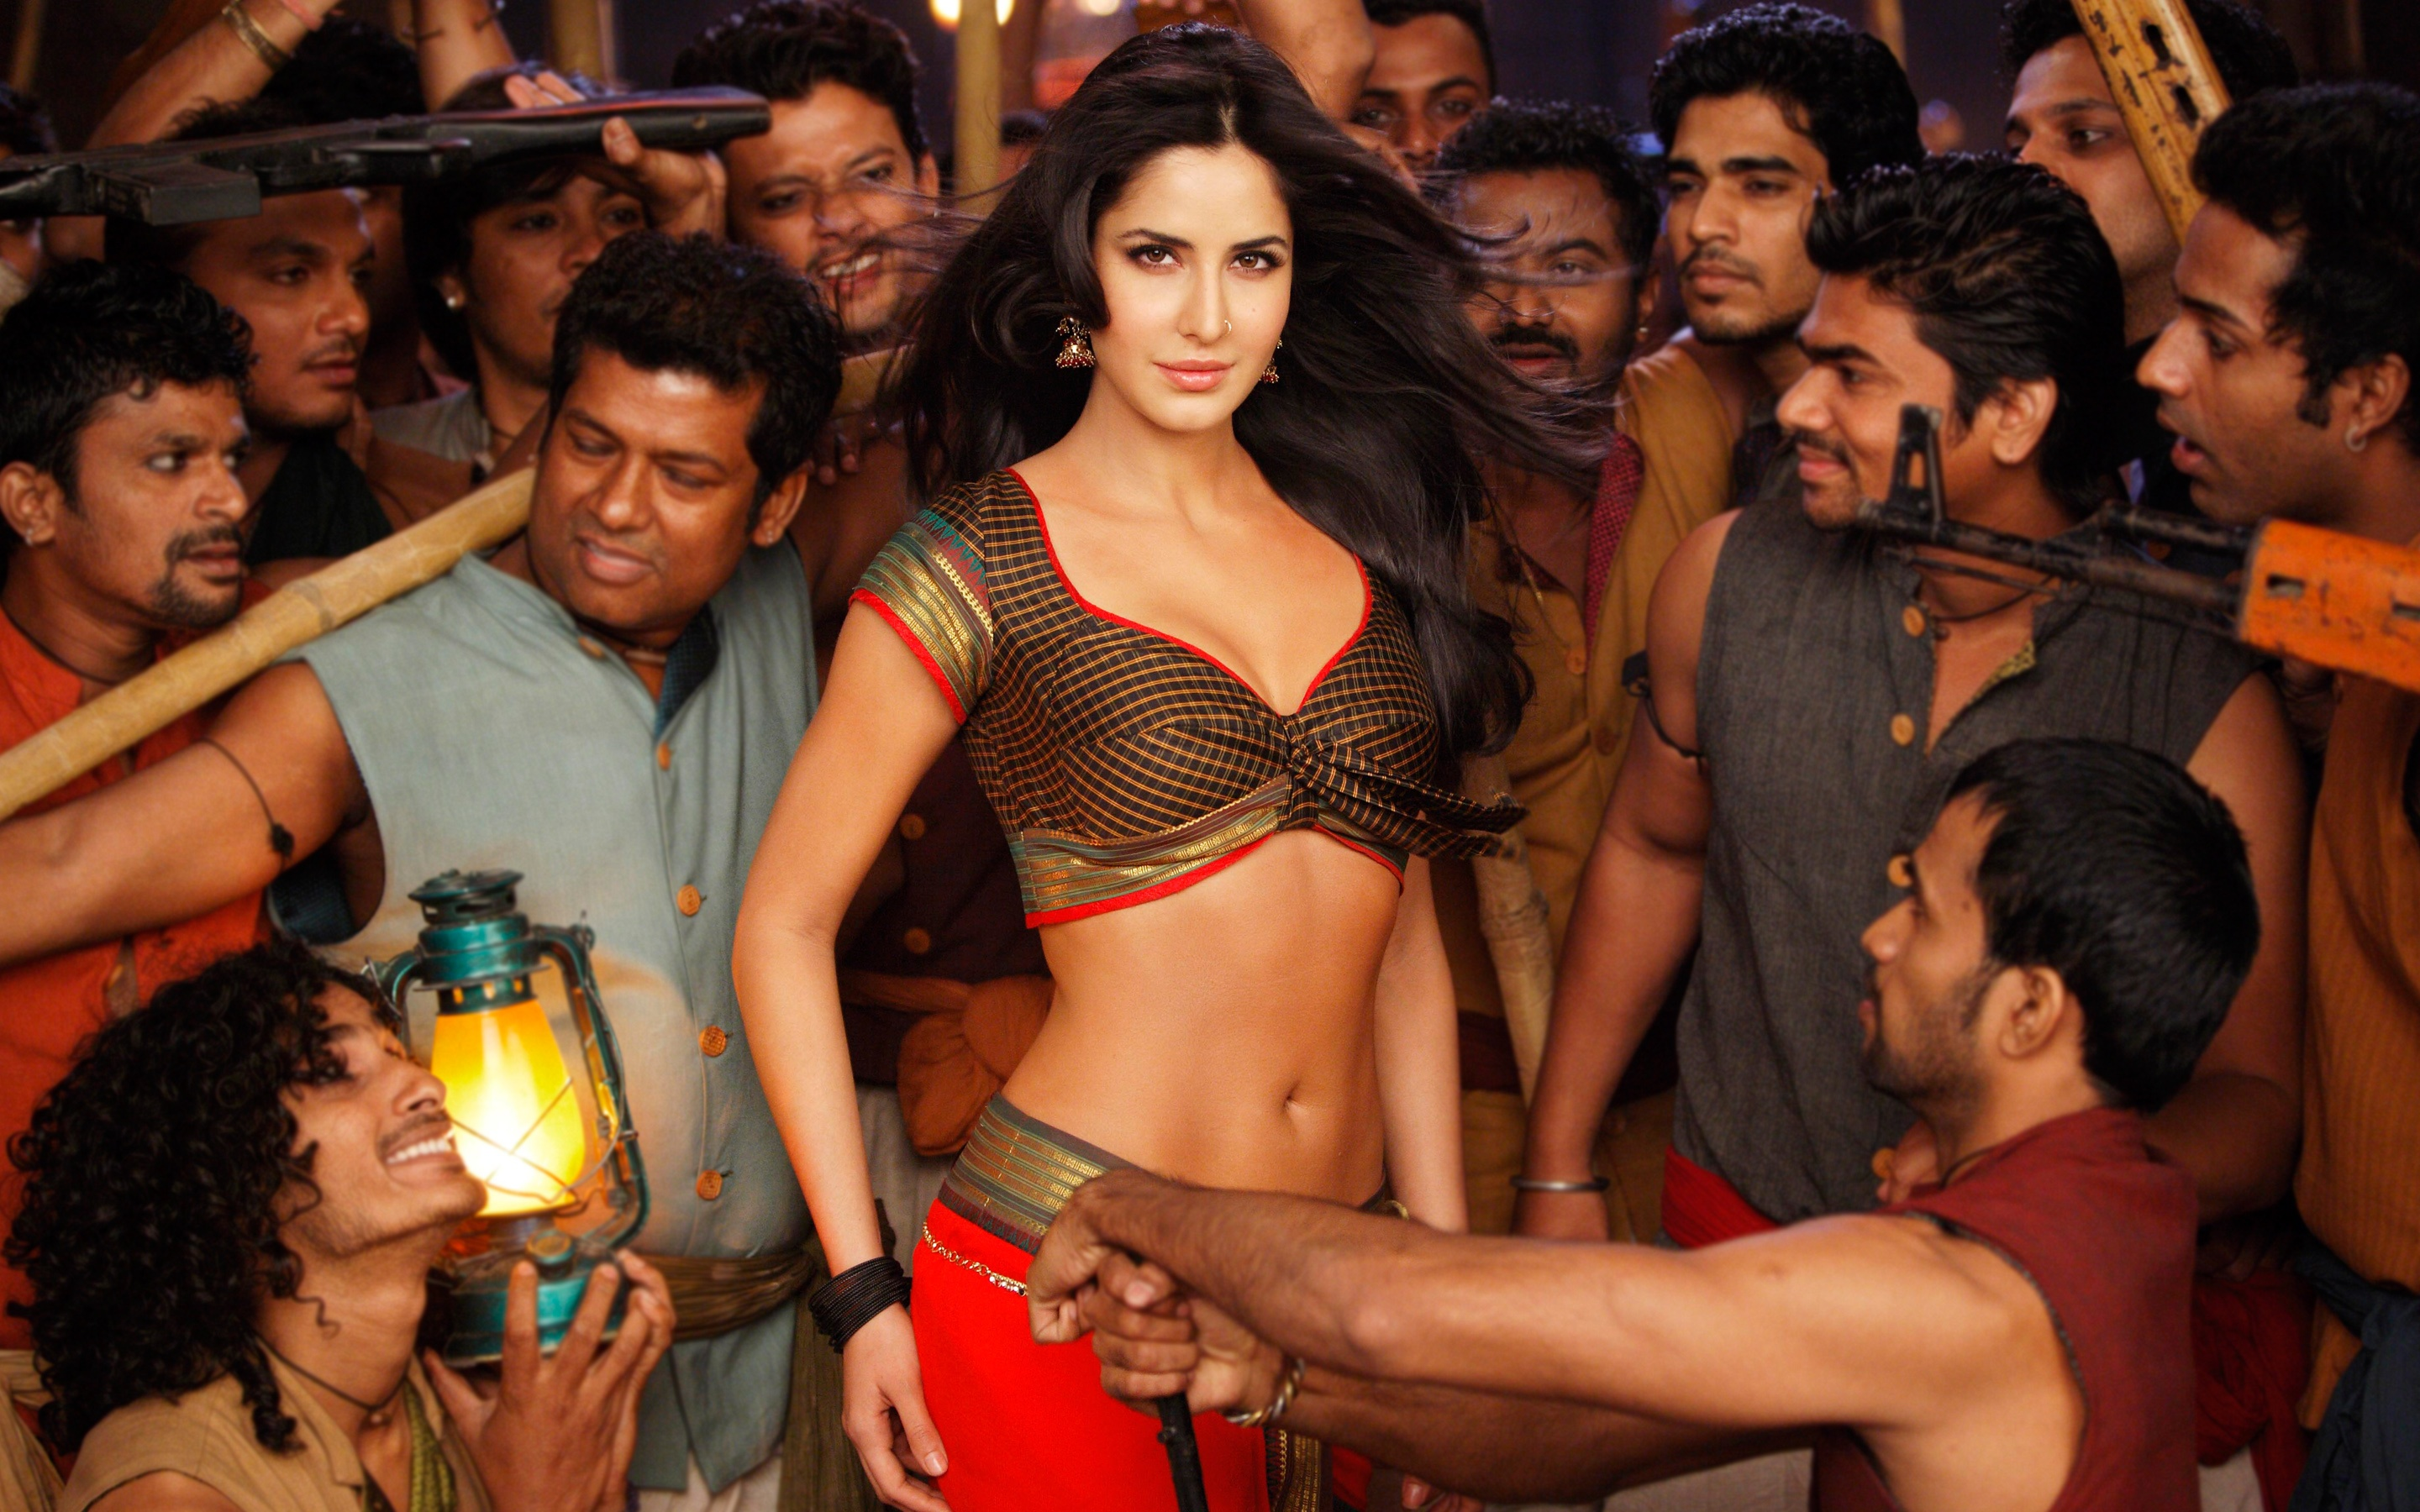 katrina kaif hot in chikni chameli wallpapers in jpg format for free